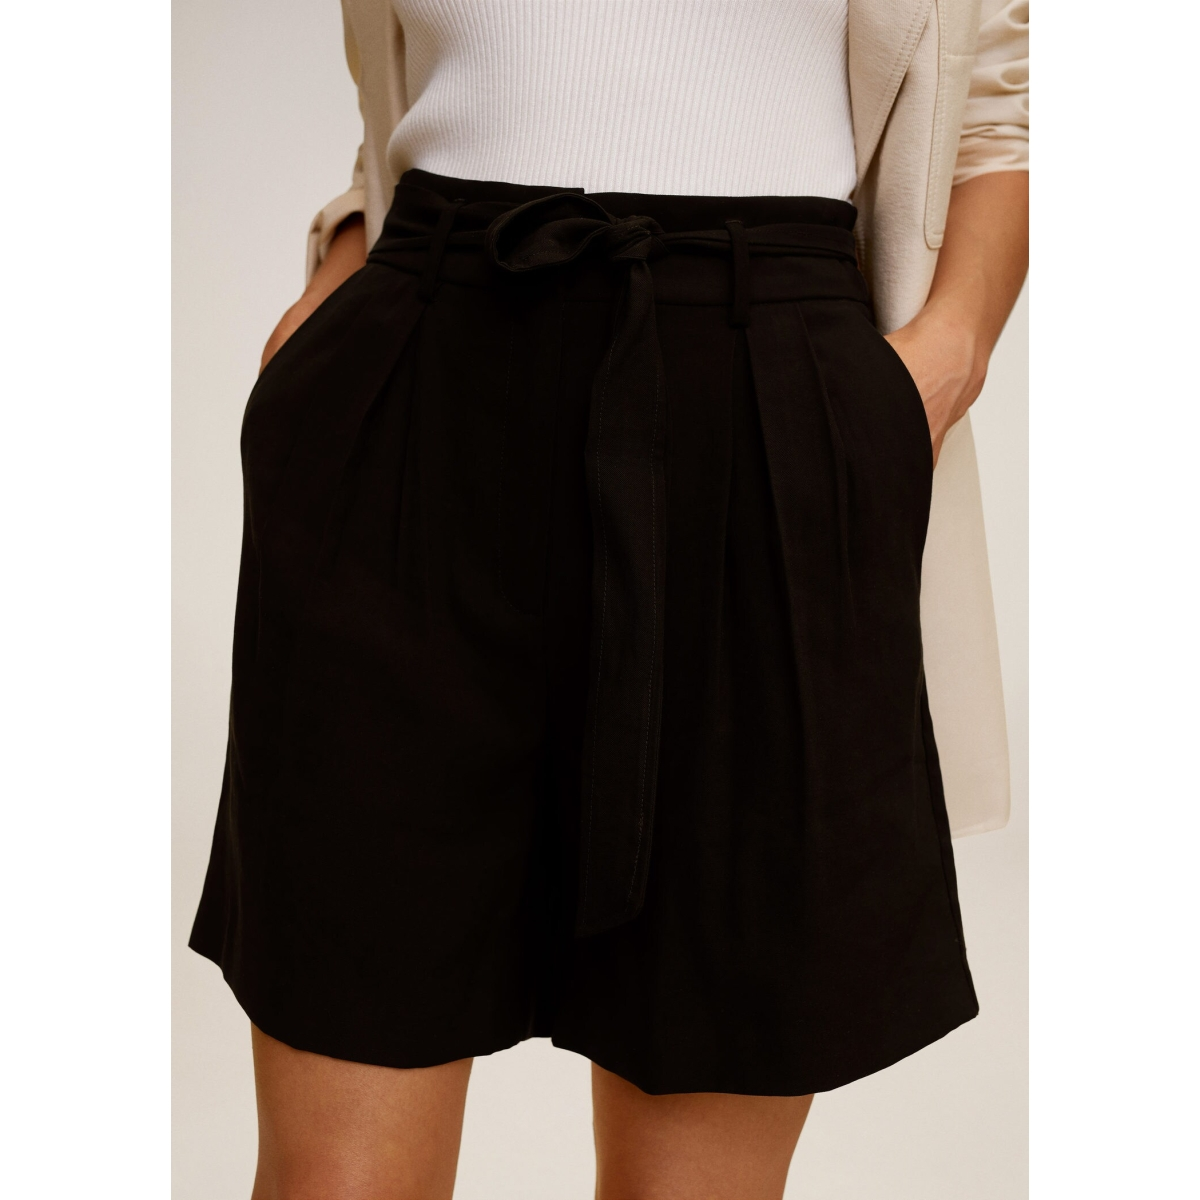 high waist short met strik 77030548 mango korte broek 99